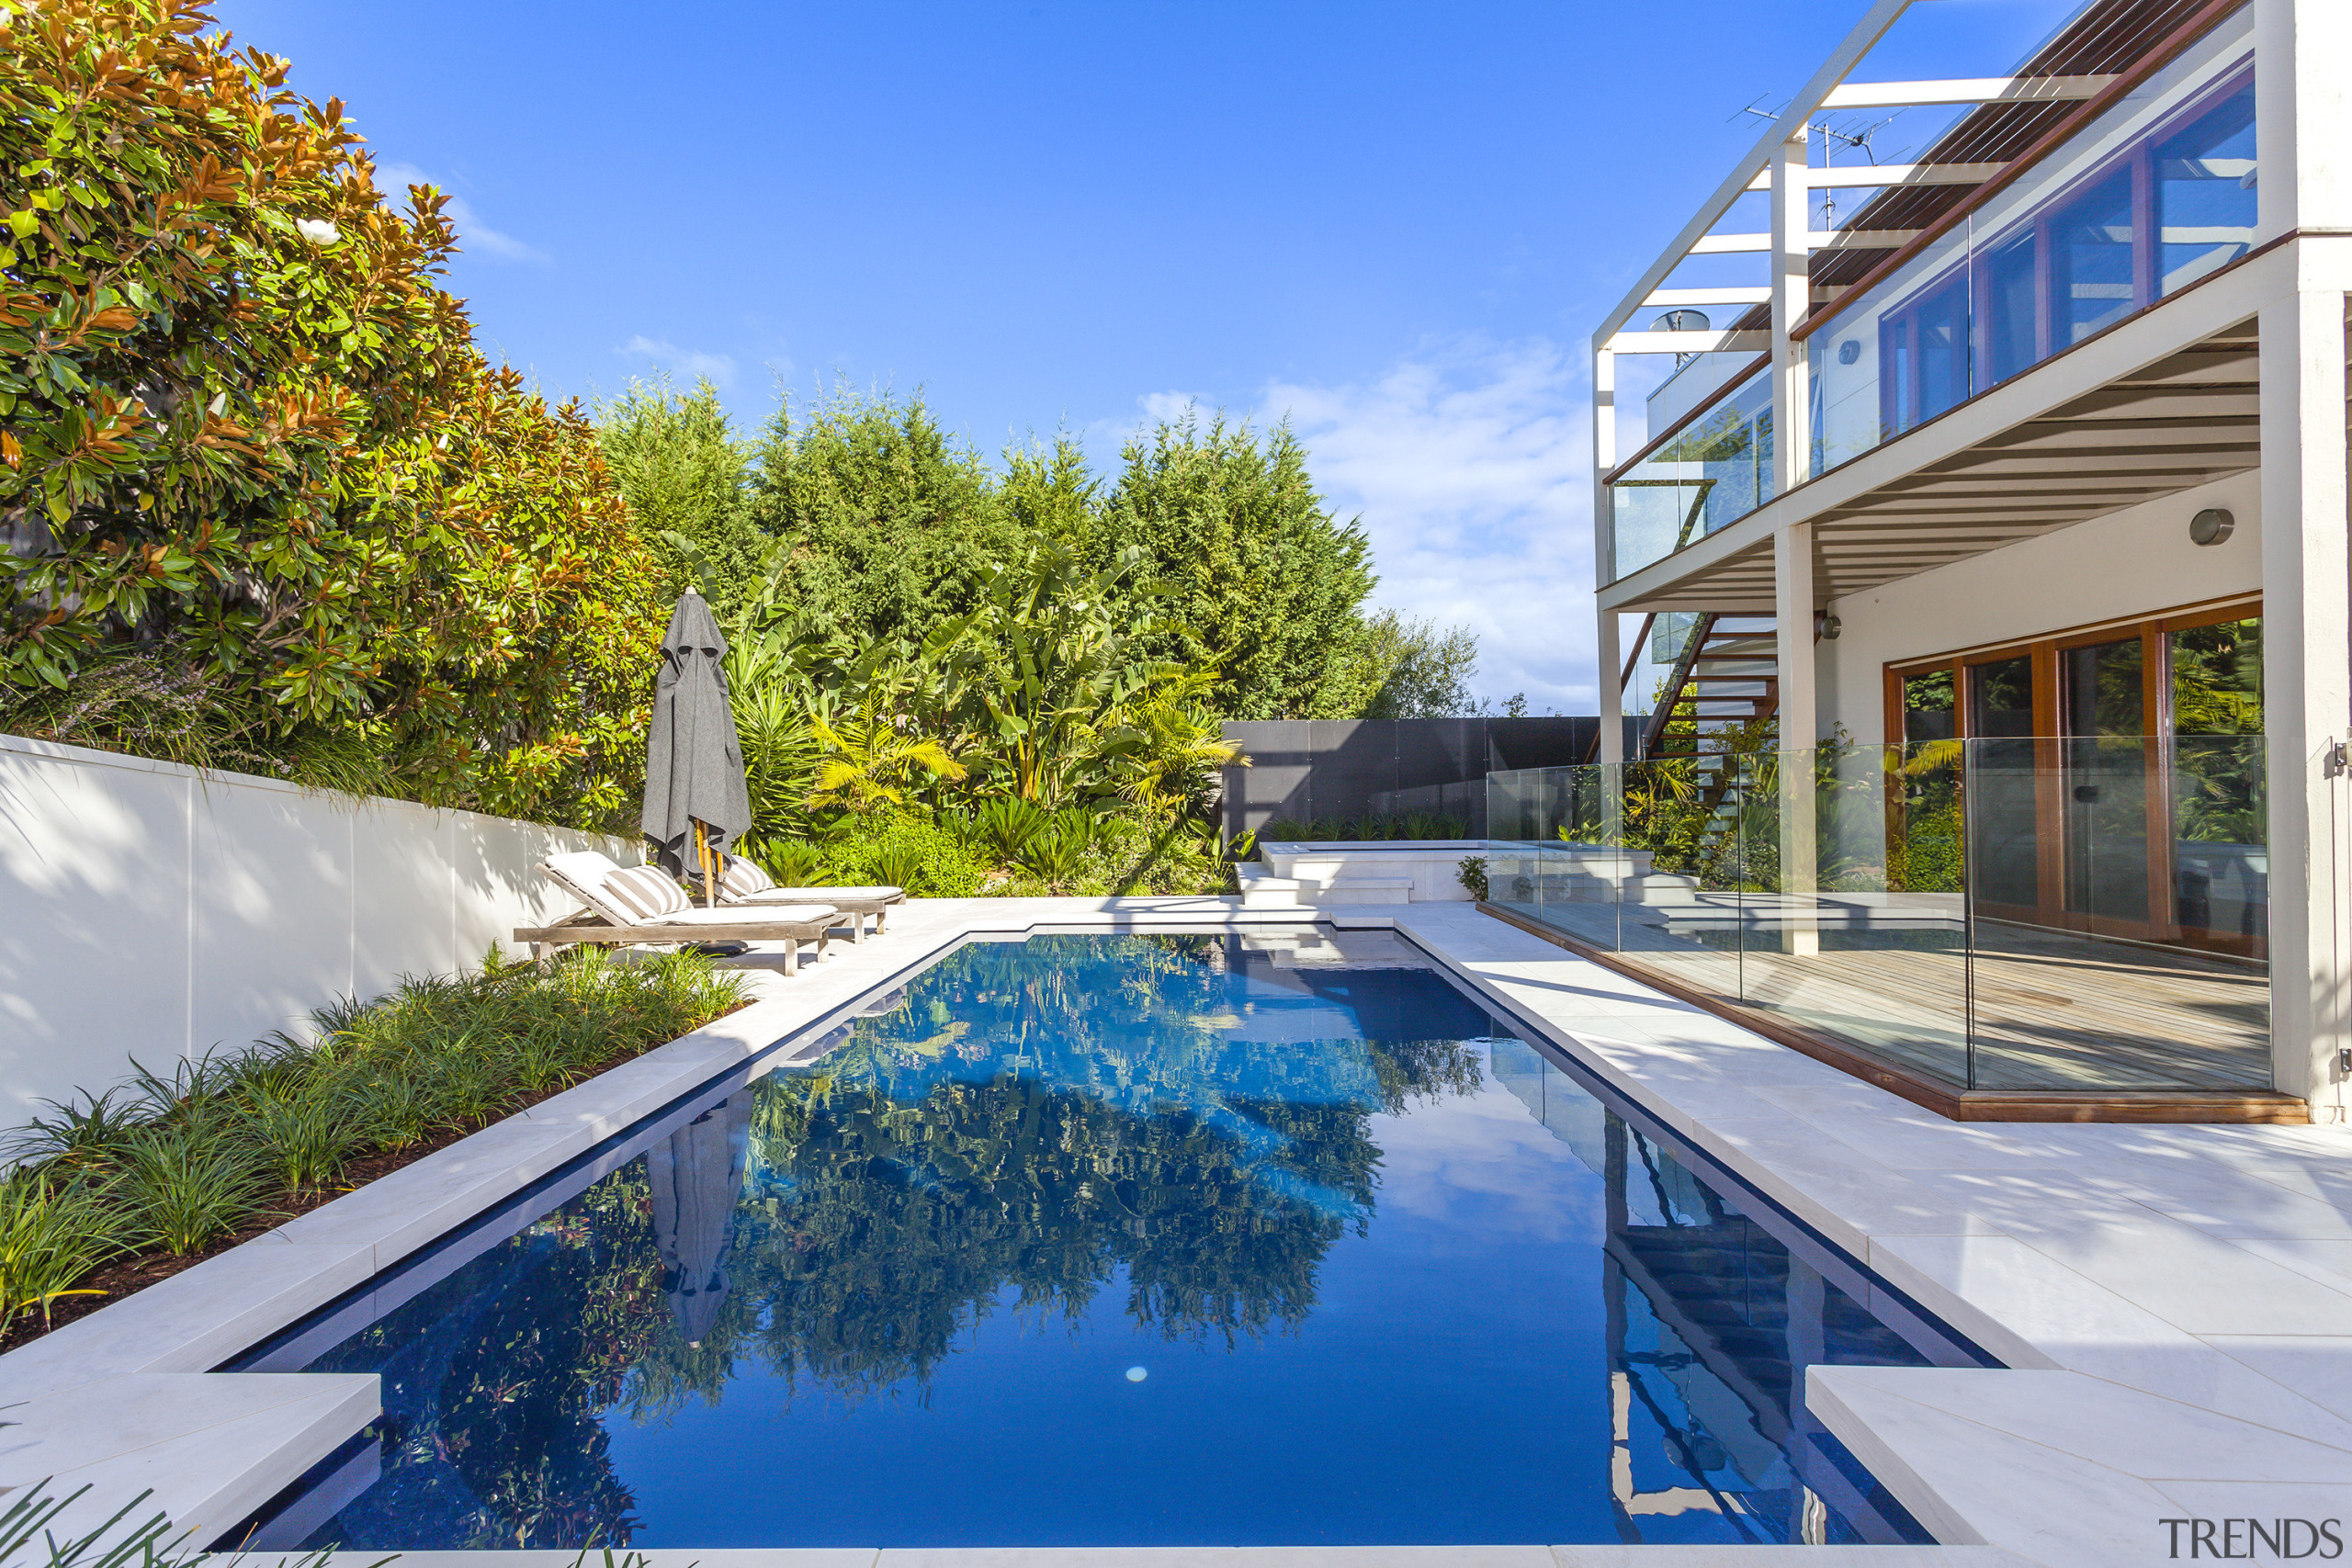 In-ground fibreglass swimming pools from Narellan Pools can architecture, condominium, estate, home, house, leisure, property, real estate, reflection, residential area, swimming pool, villa, water